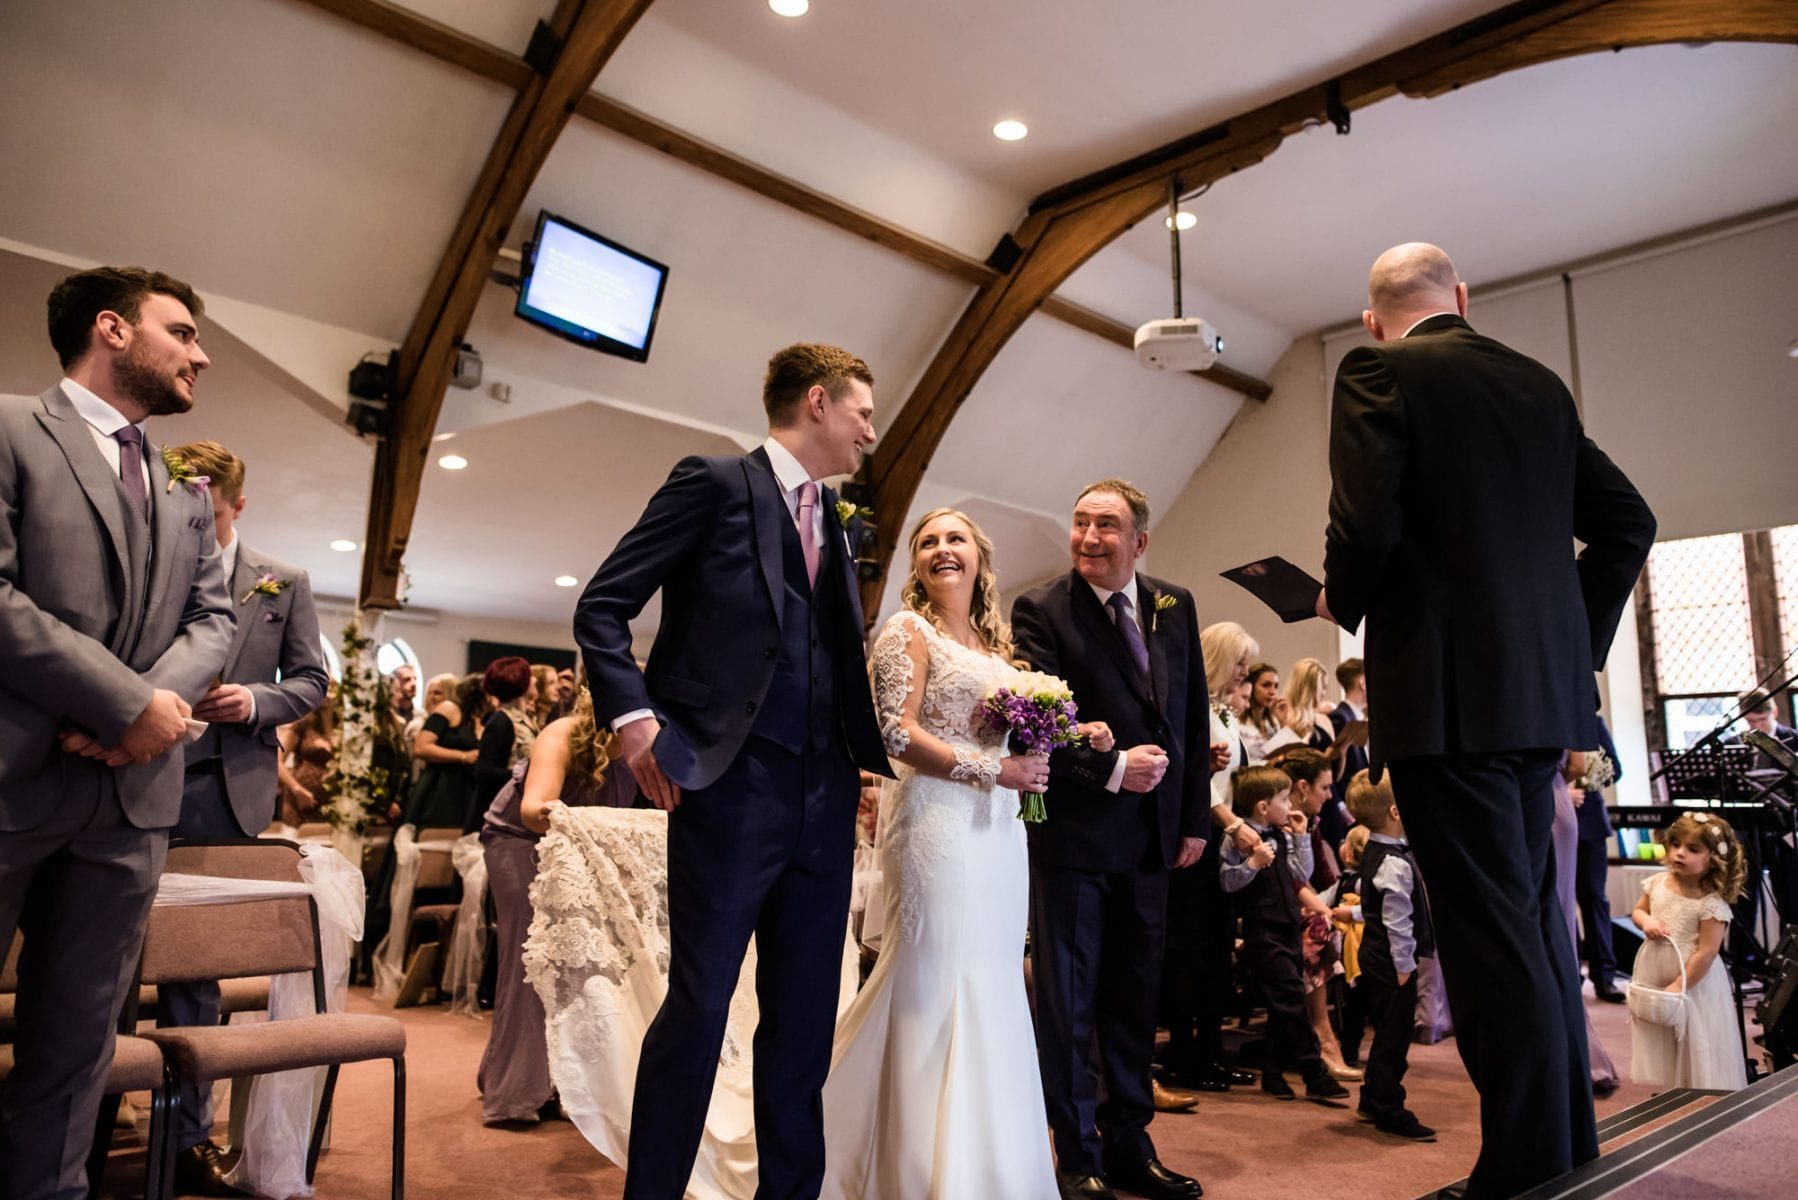 Lymm Baptist Church Wedding Ceremony